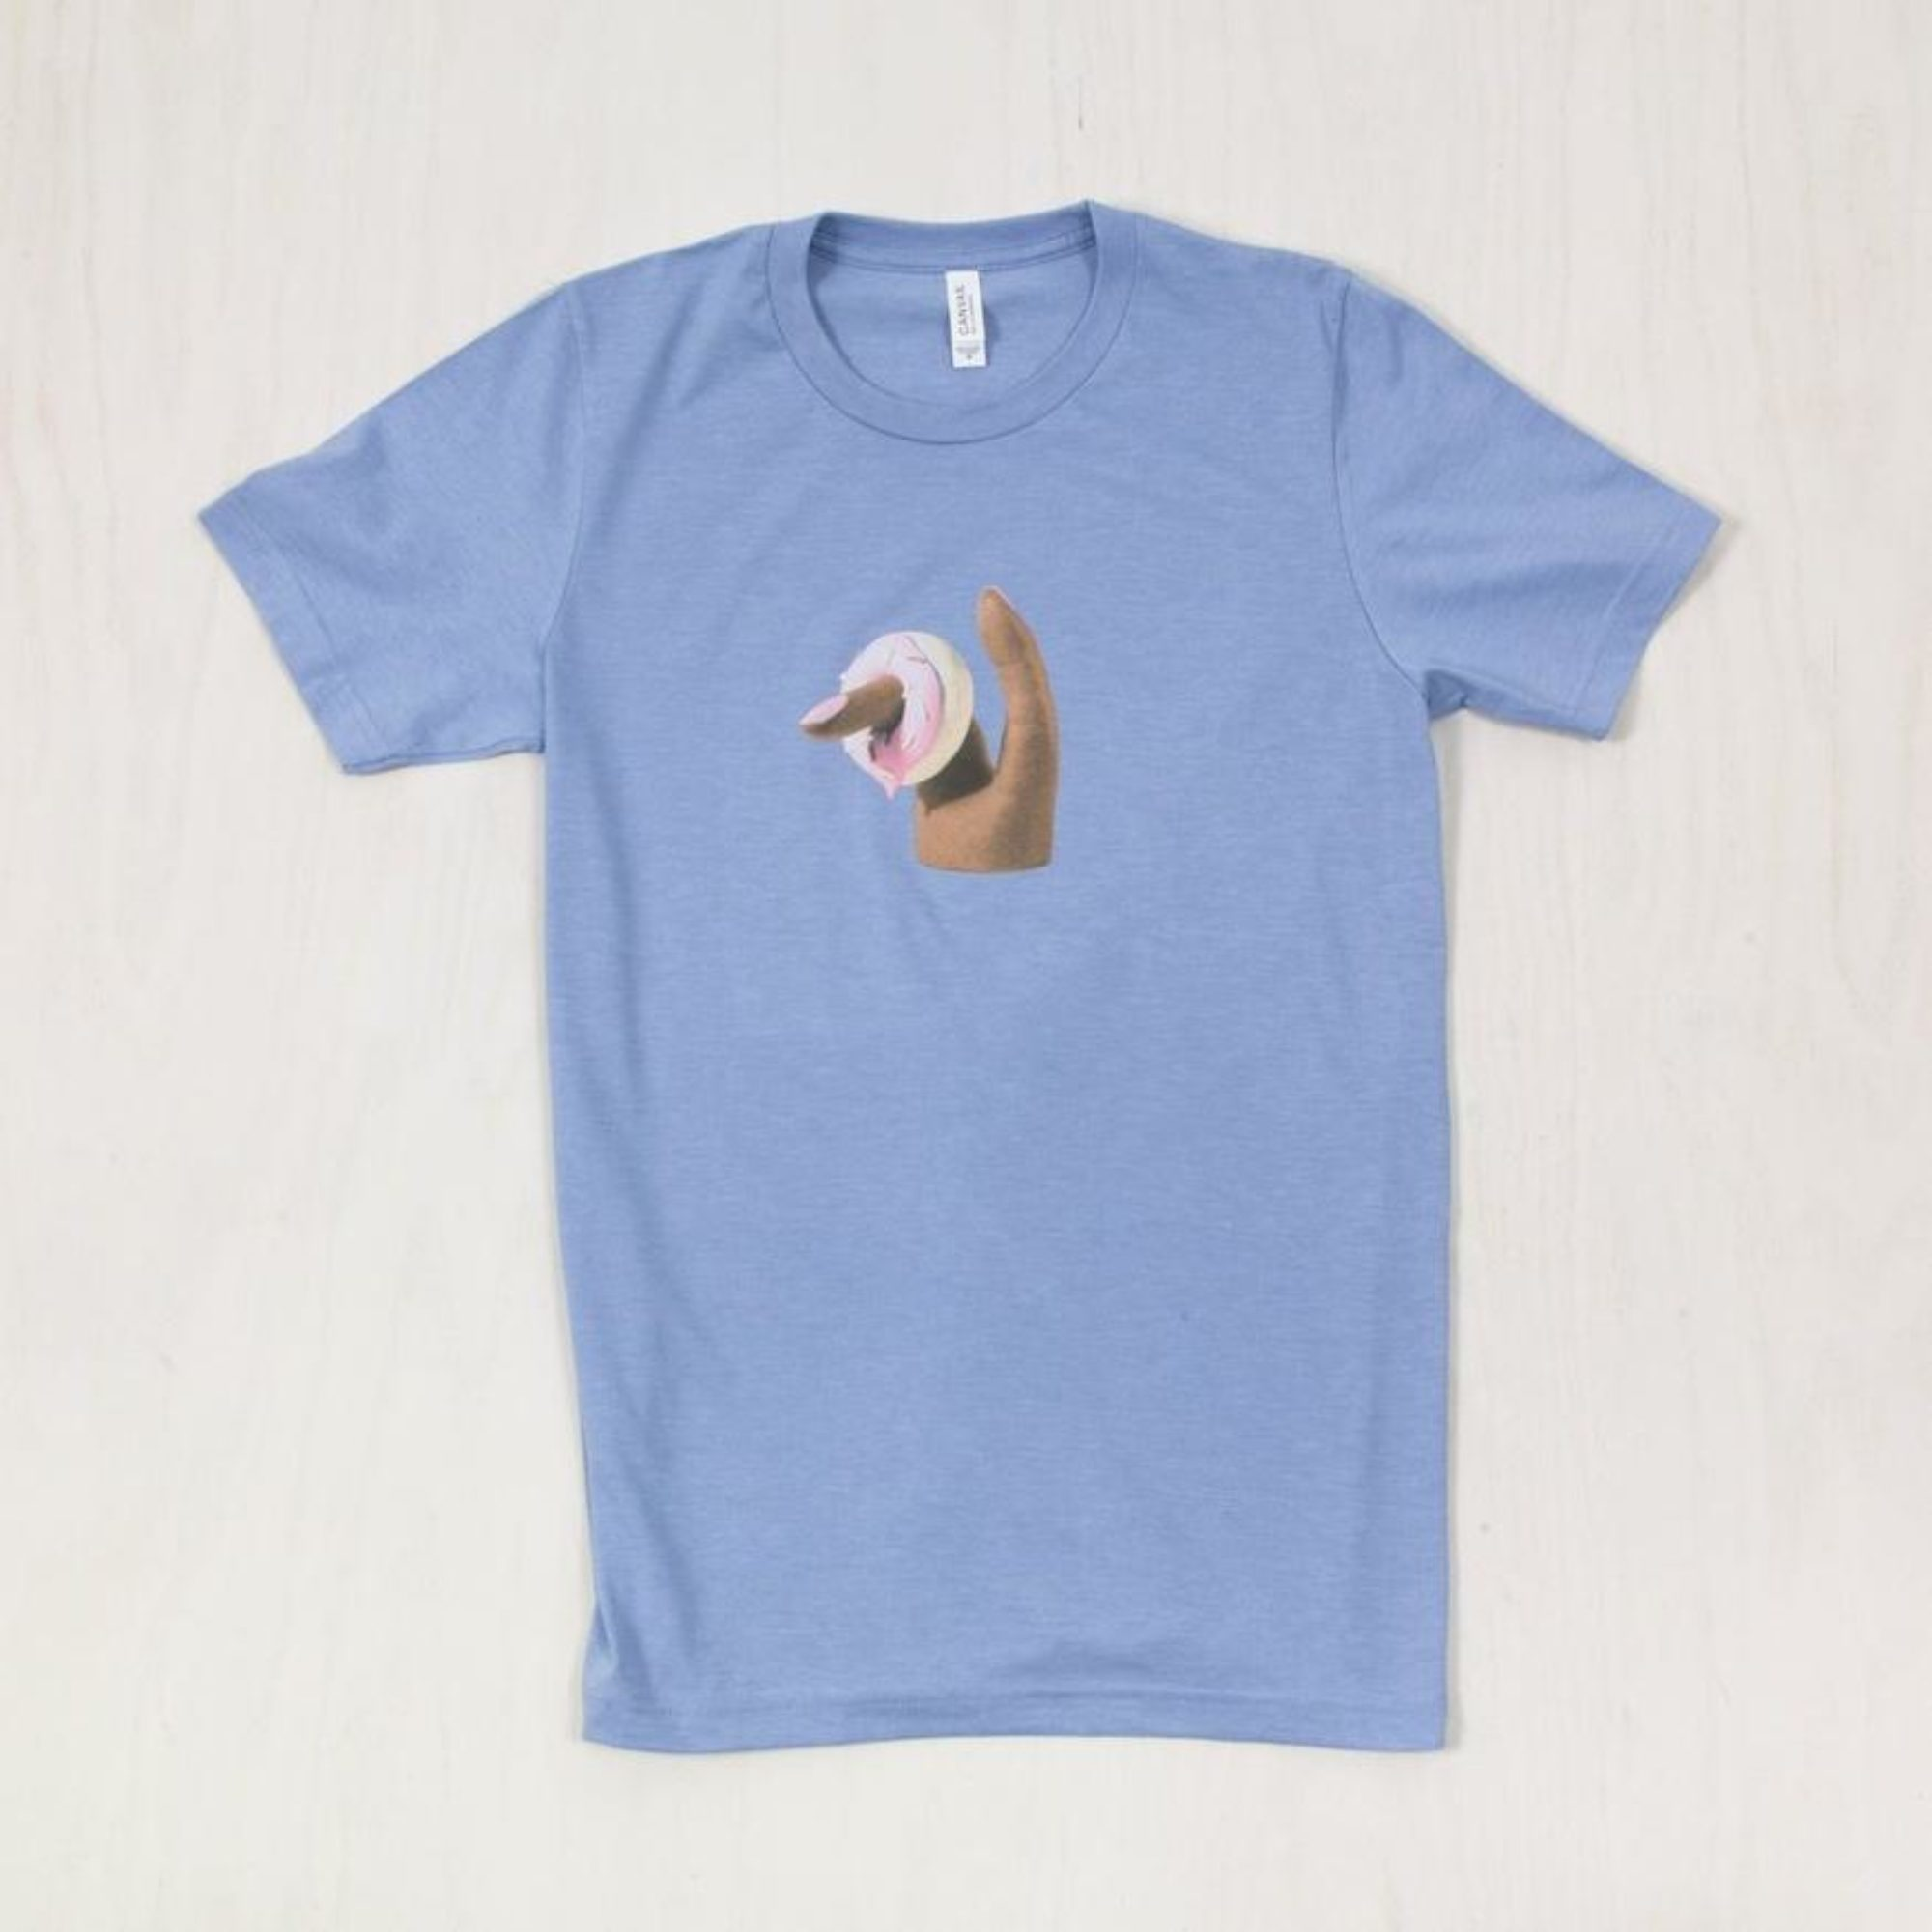 Light blue t-shirt featuring finger inserted into a pink frosted donut